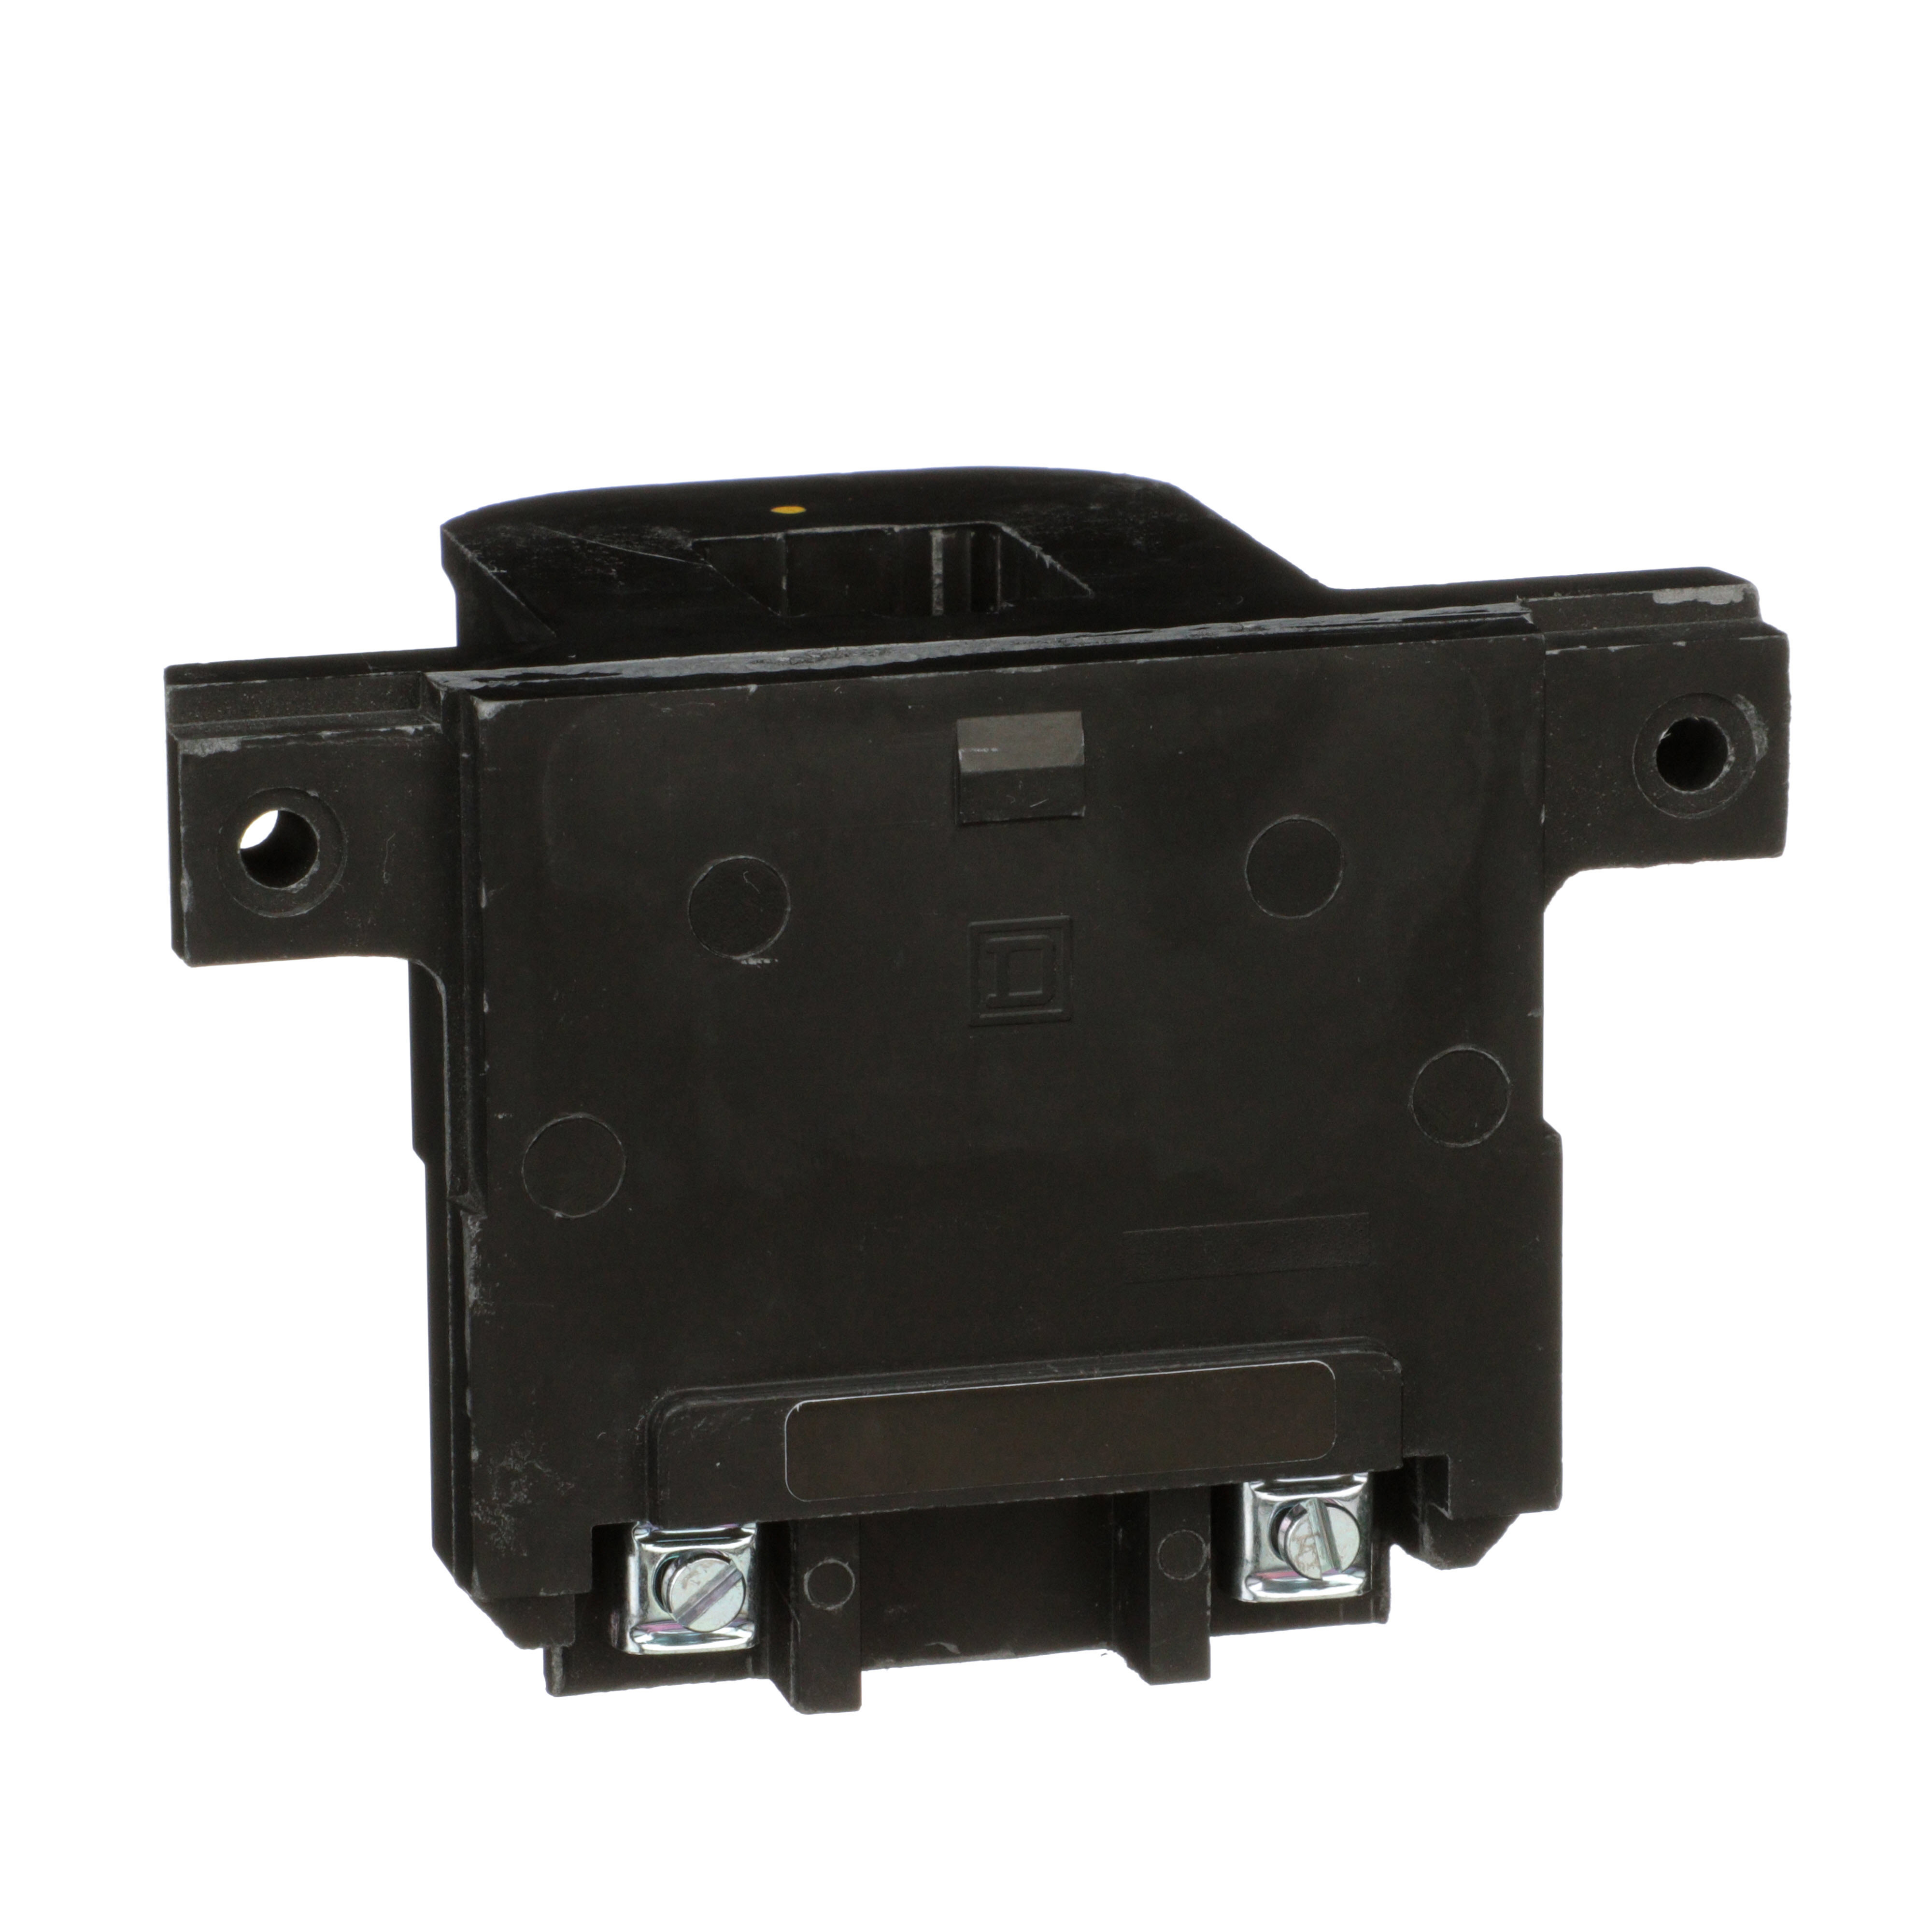 SQUARE D 3106340957 : (COIL ONLY) CONTACTOR STARTER COIL 480VAC